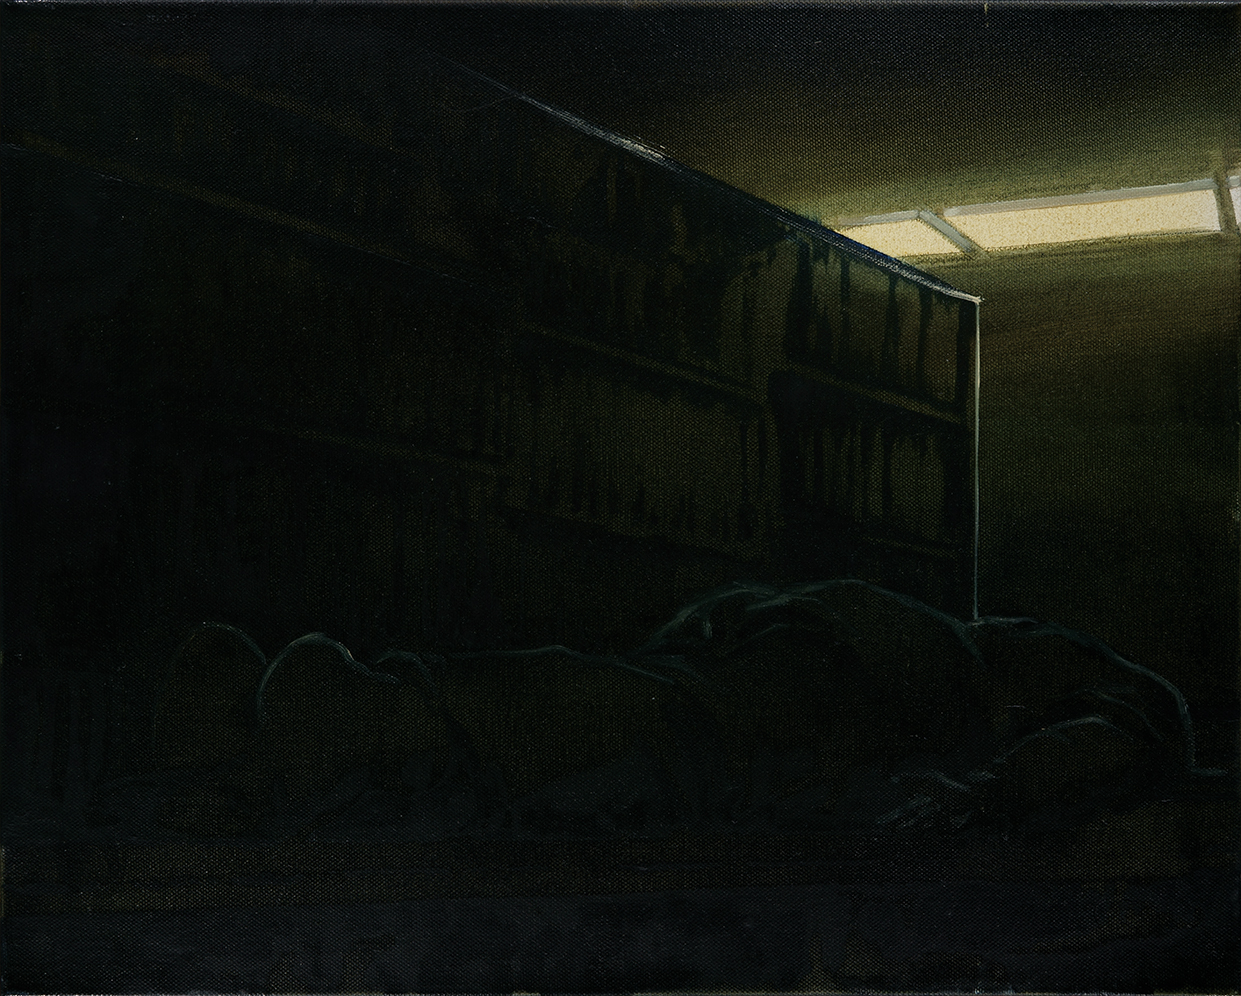 library at night, oil on canvas, 40x50cm. 2012